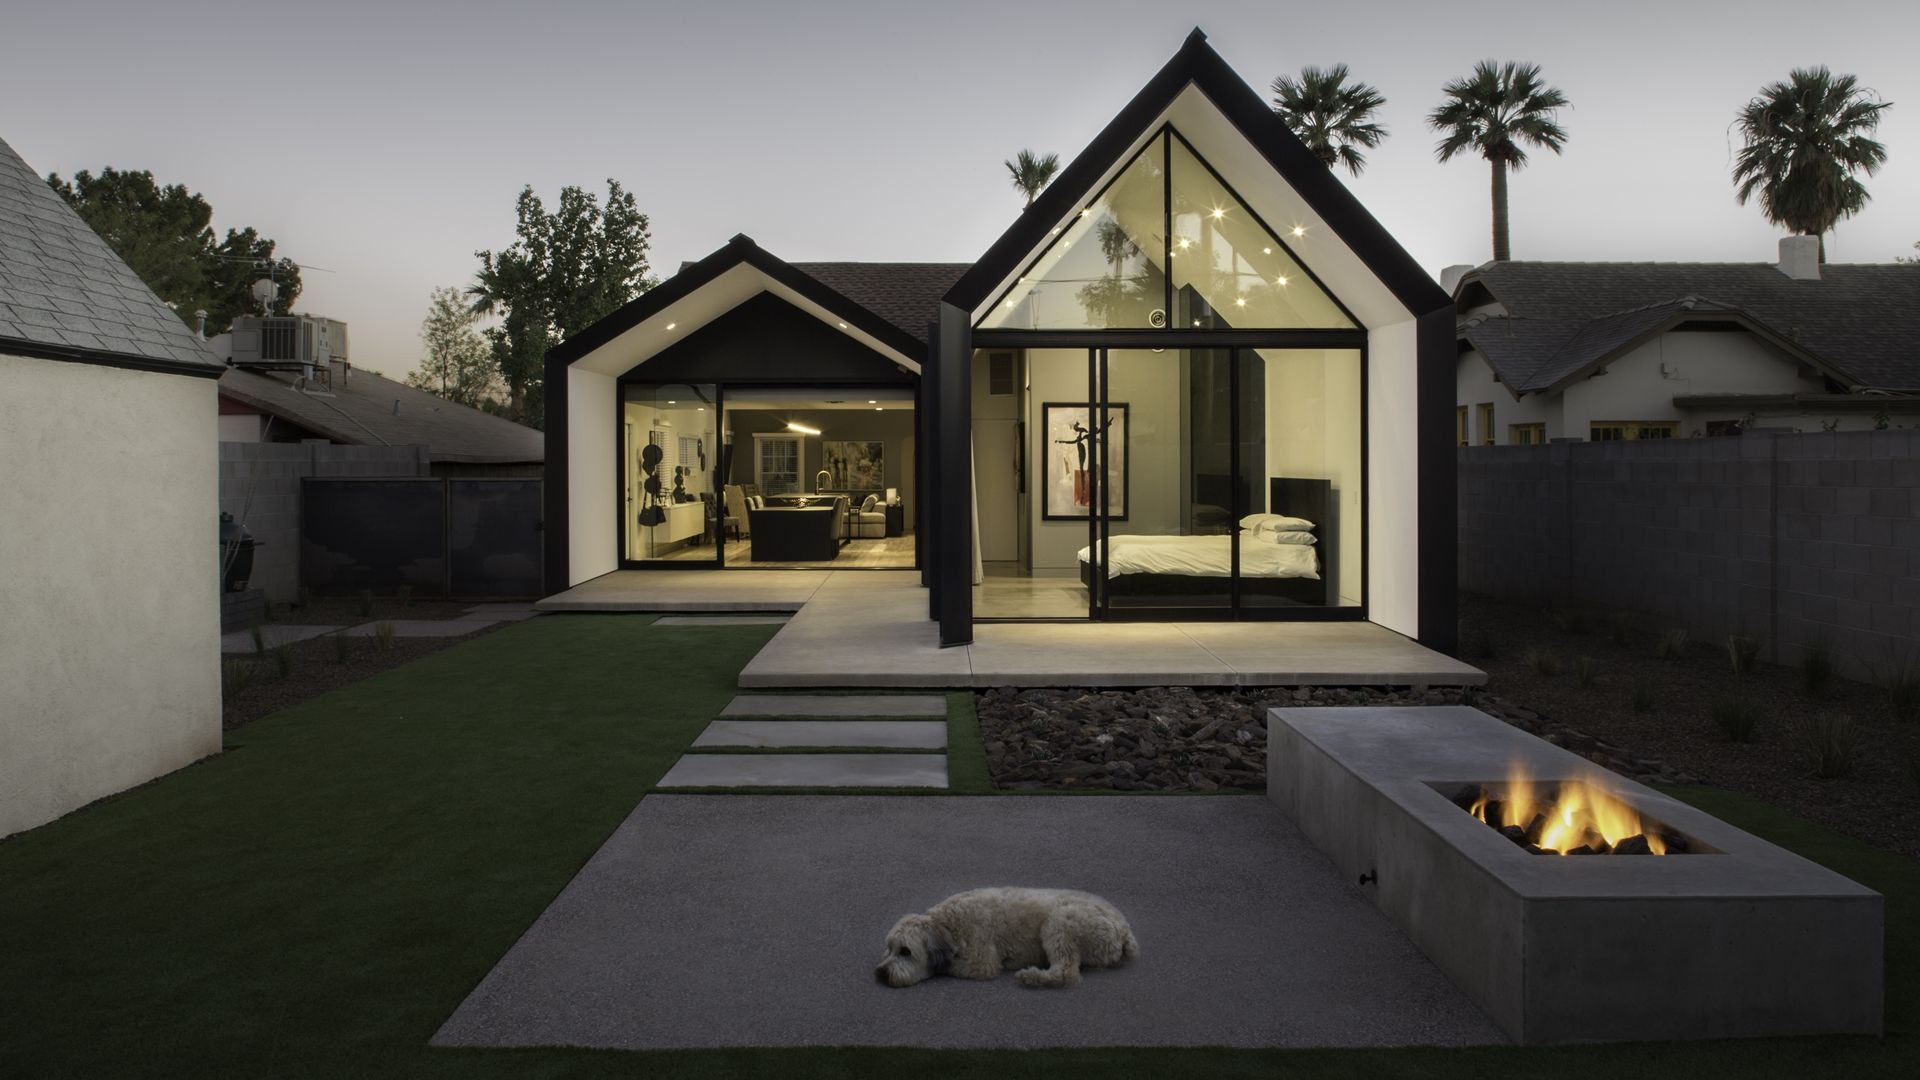 House Extensions: Amazing Small Home Renovation In Phoenix within Small Farmhouse Plans With Pictures